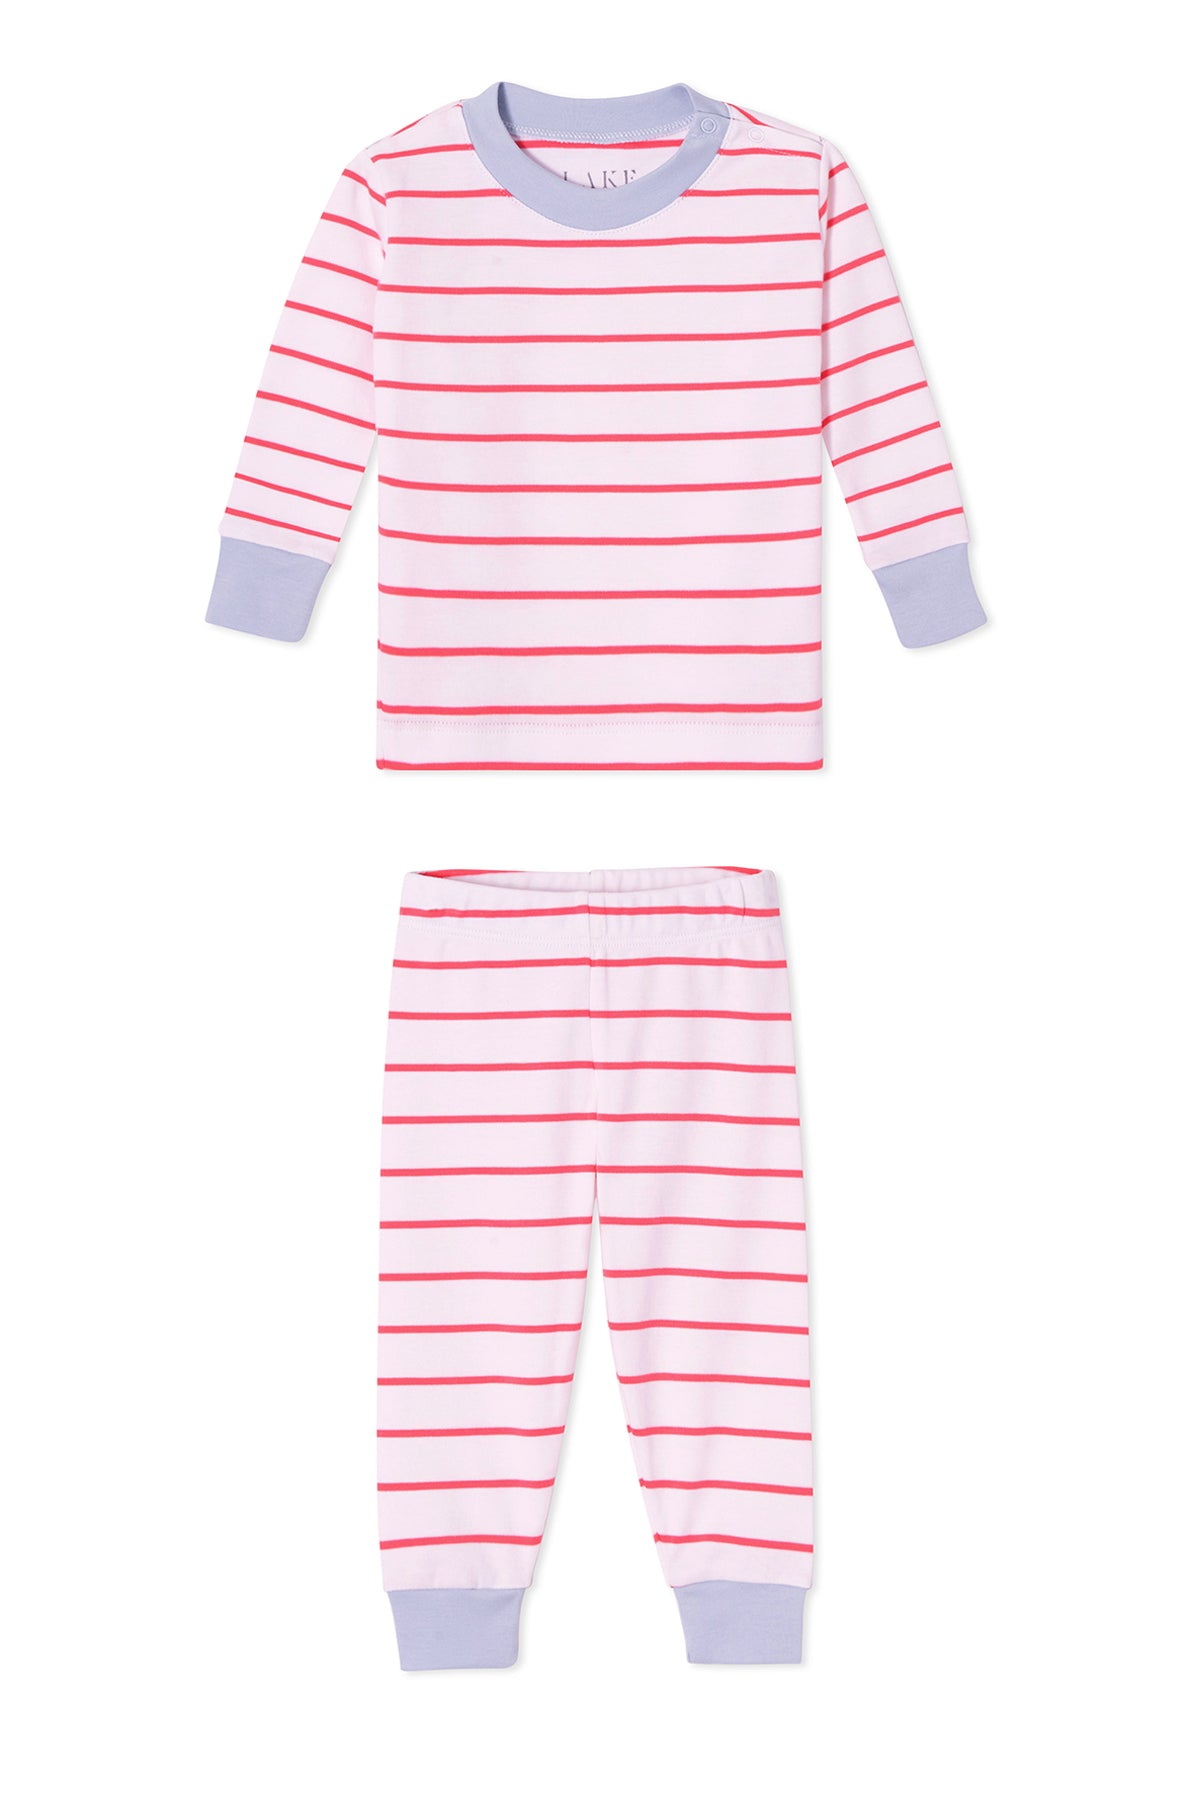 Baby Long-Long Set in Sorbet